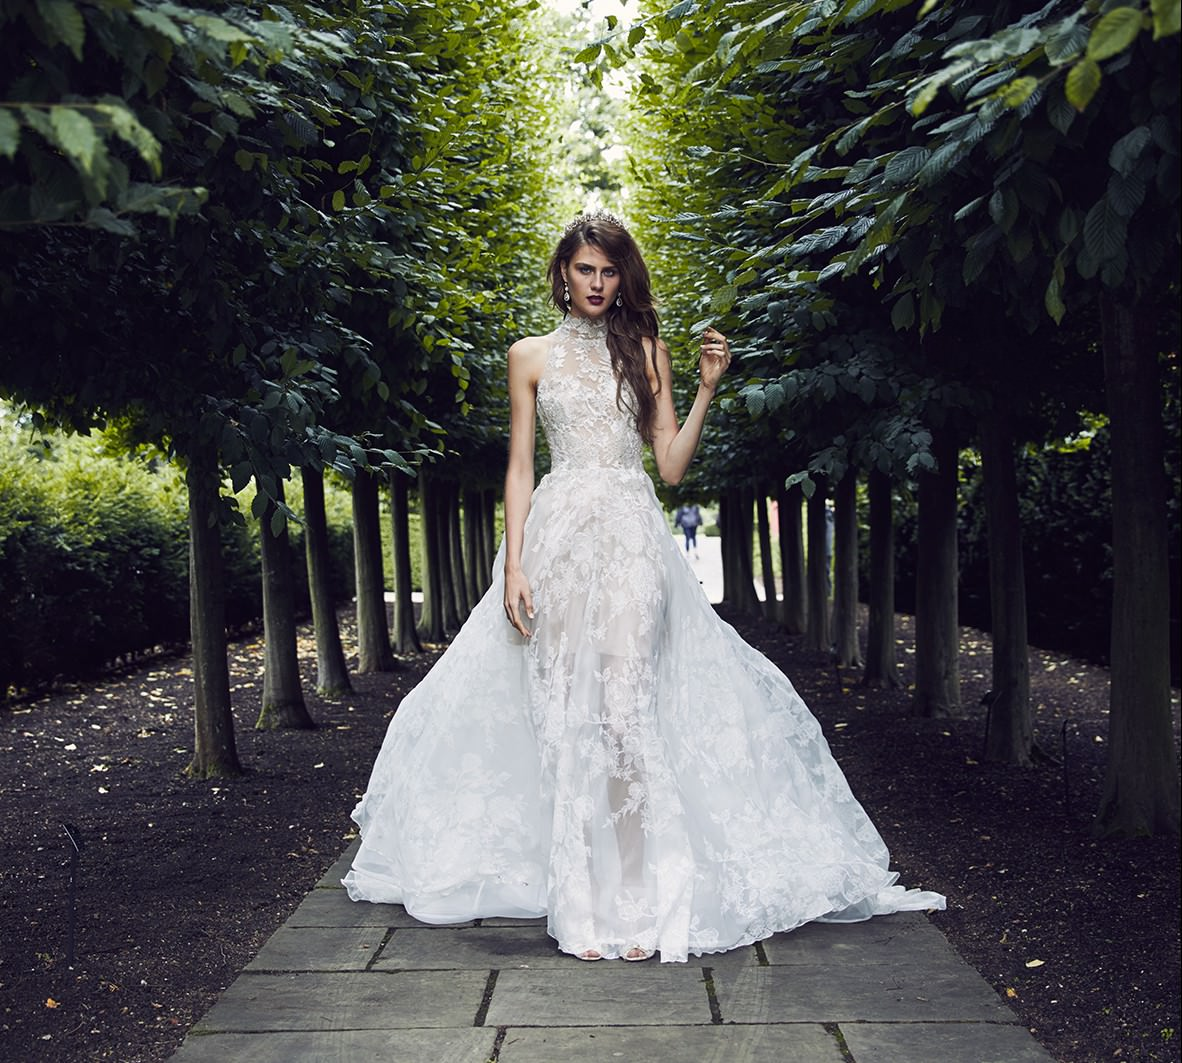 Most Stylish Wedding Dresses Of 2018 In Collaboration With Brides Magazine